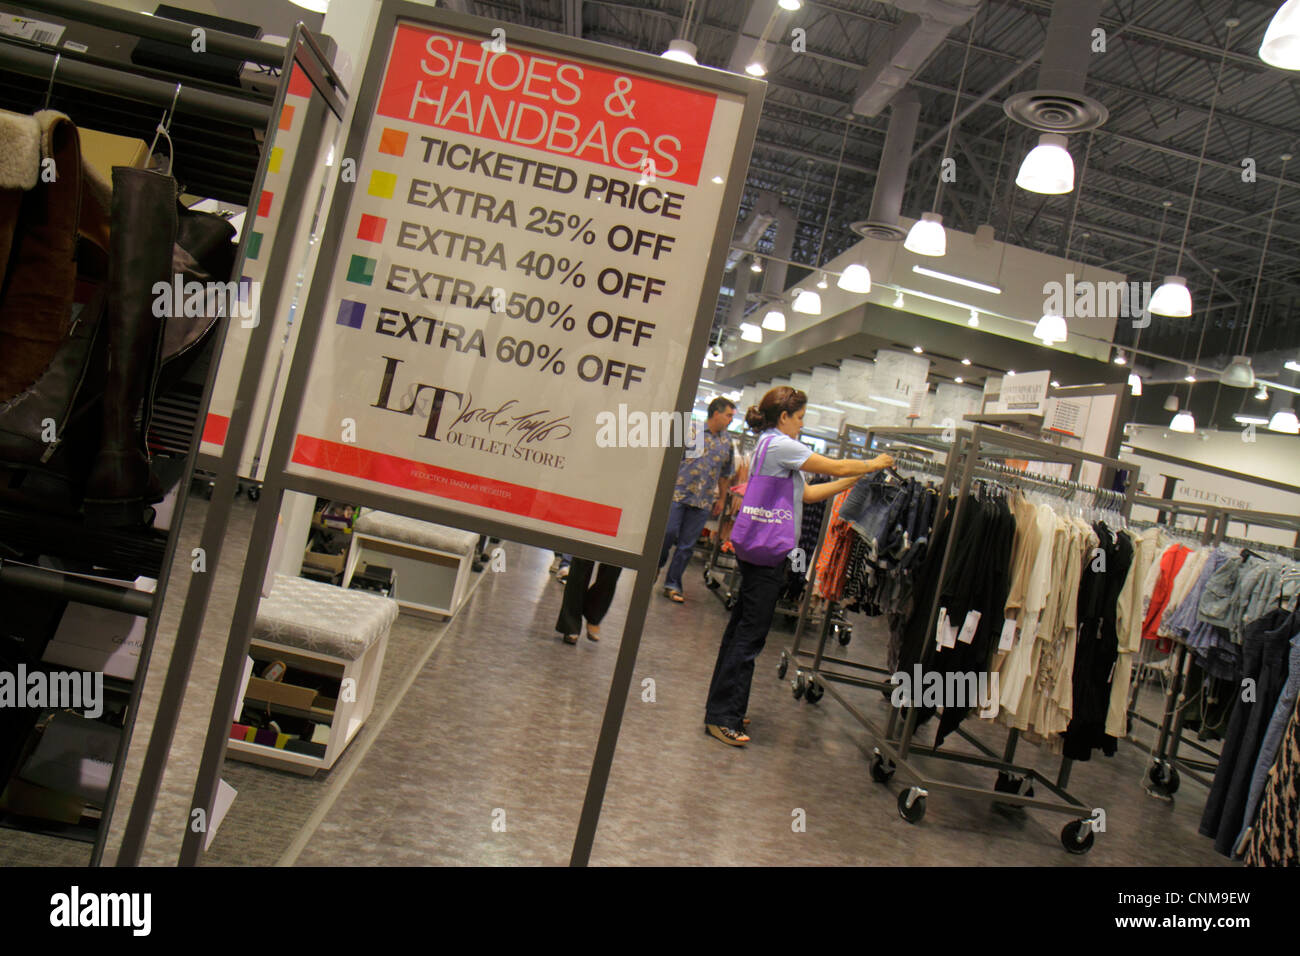 Miami Florida Sweetwater Dolphin Mall shopping Lord   and Taylor Outlet  Store women s retail display for b69d2f733eea8